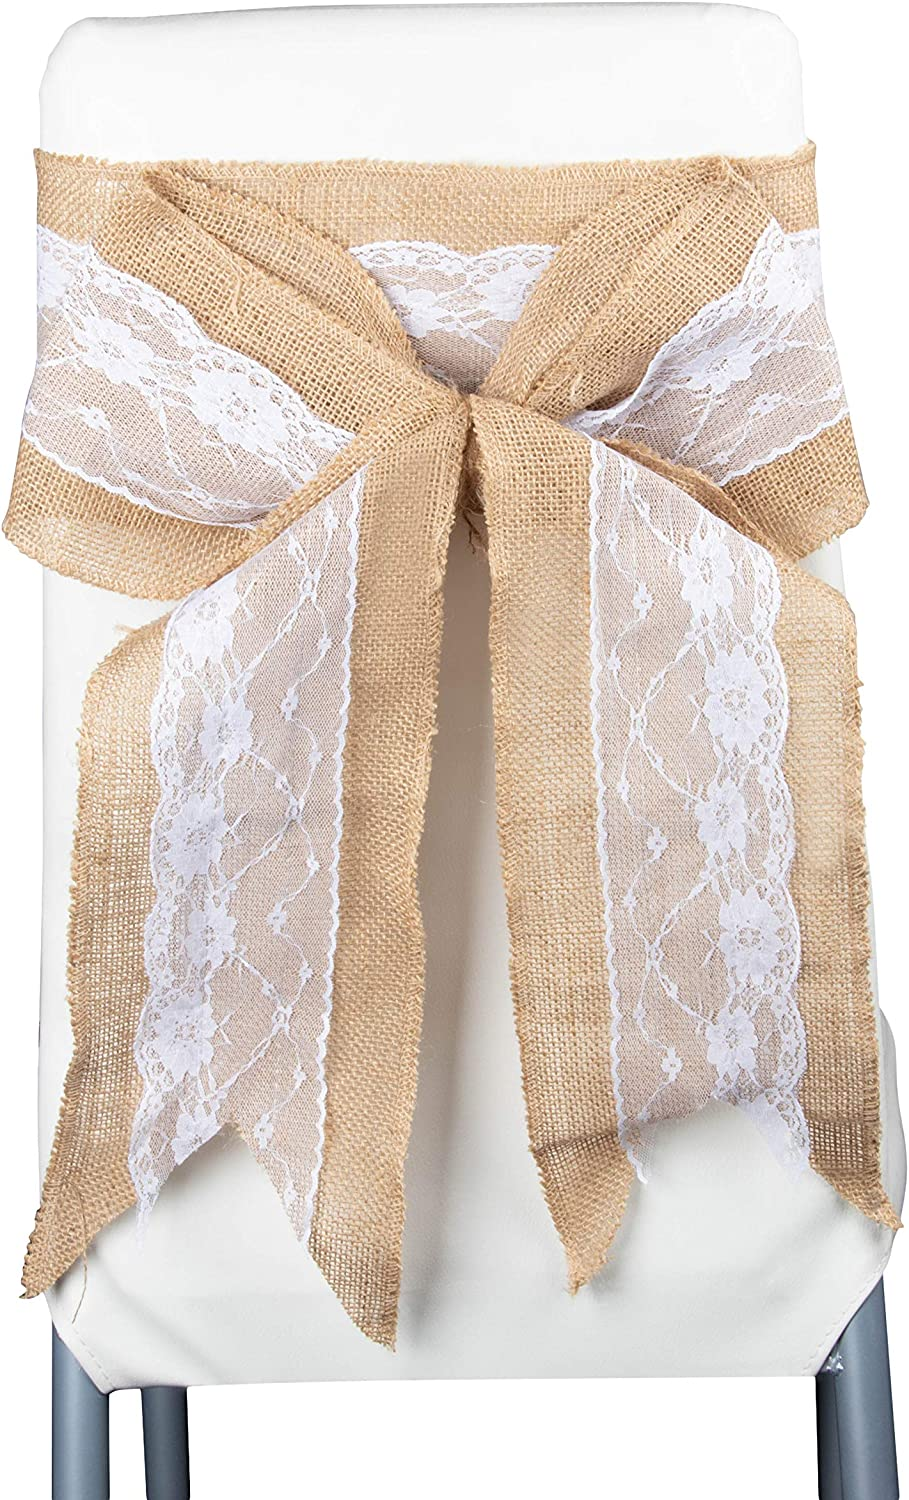 Shabby Chic Hessian Jute Burlap Flower//Bowknot Rustic Wedding Table Decor Crafts